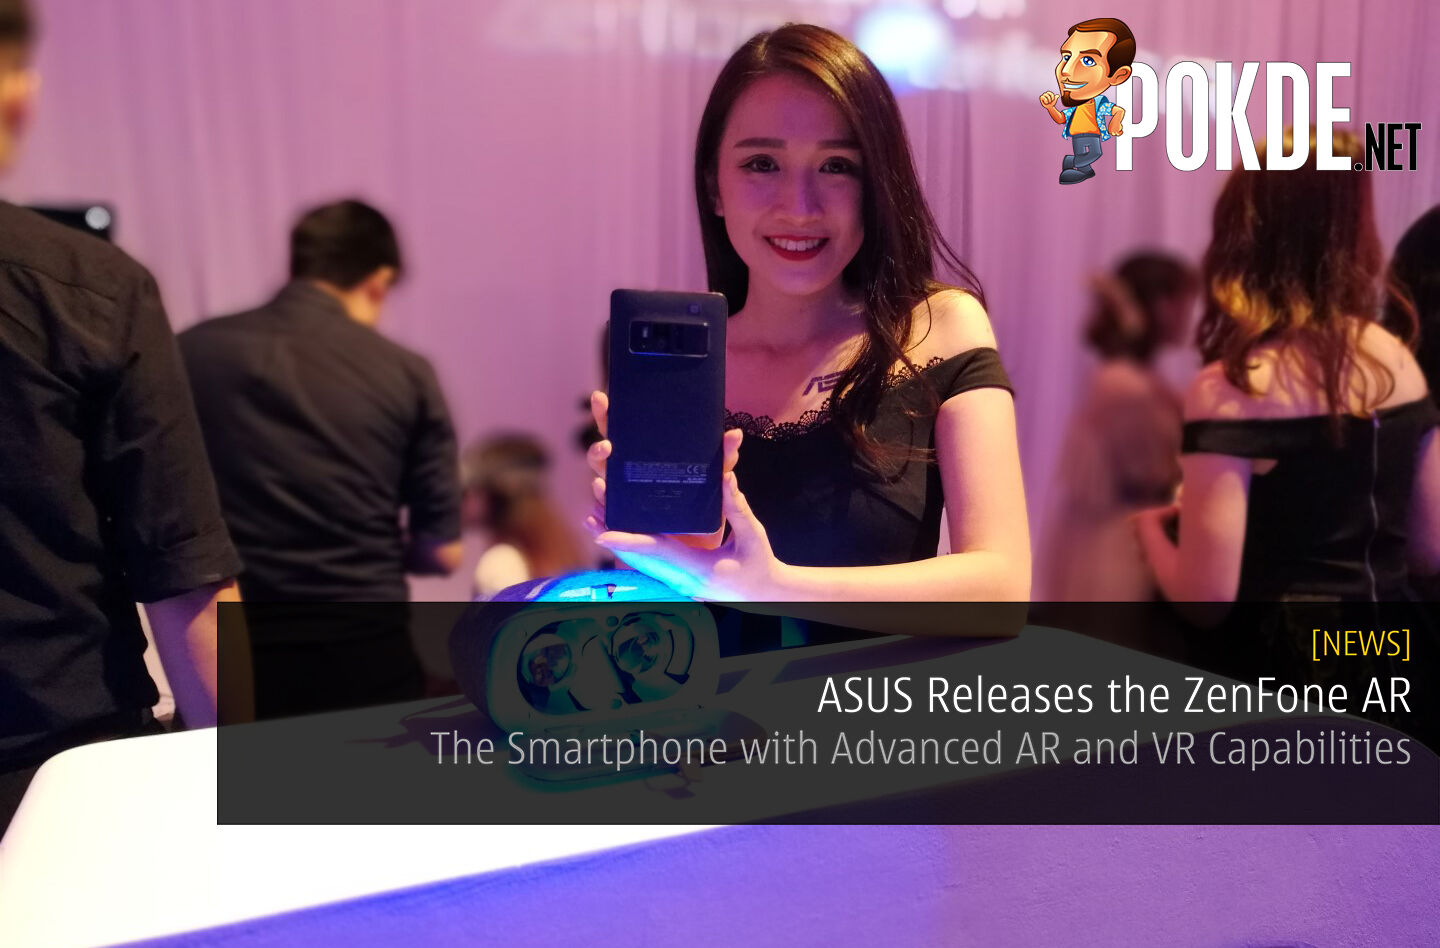 ASUS Releases the ZenFone AR; The Smartphone with Advanced AR and VR Capabilities 27